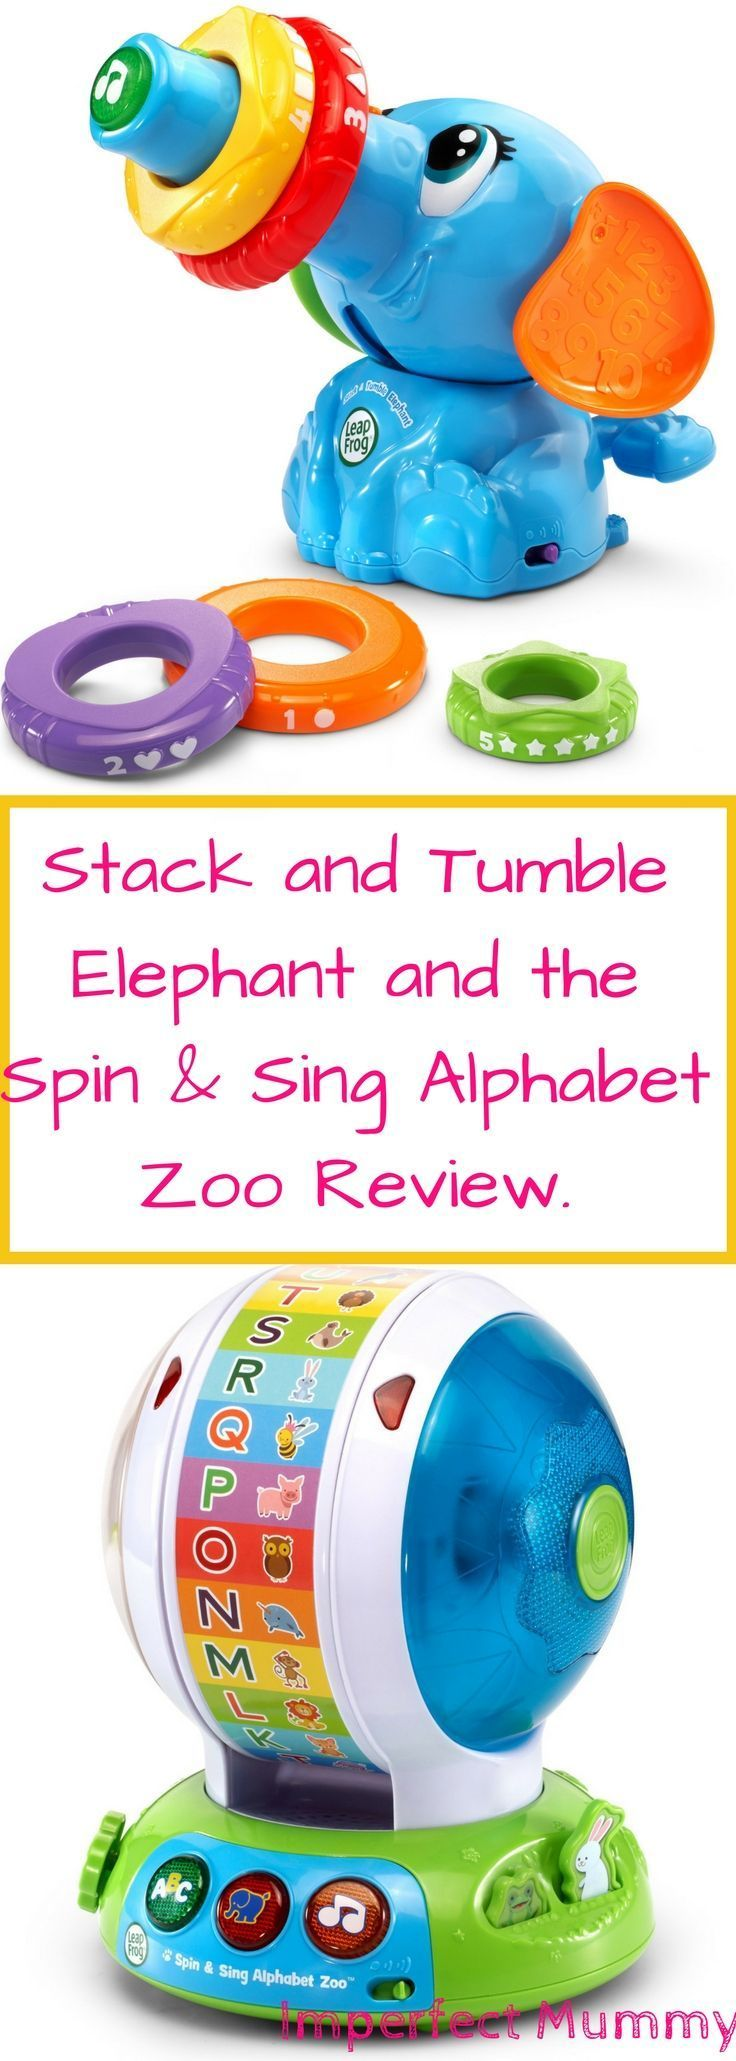 Two Fantastic New Toddler Learning Toys From Leapfrog ...